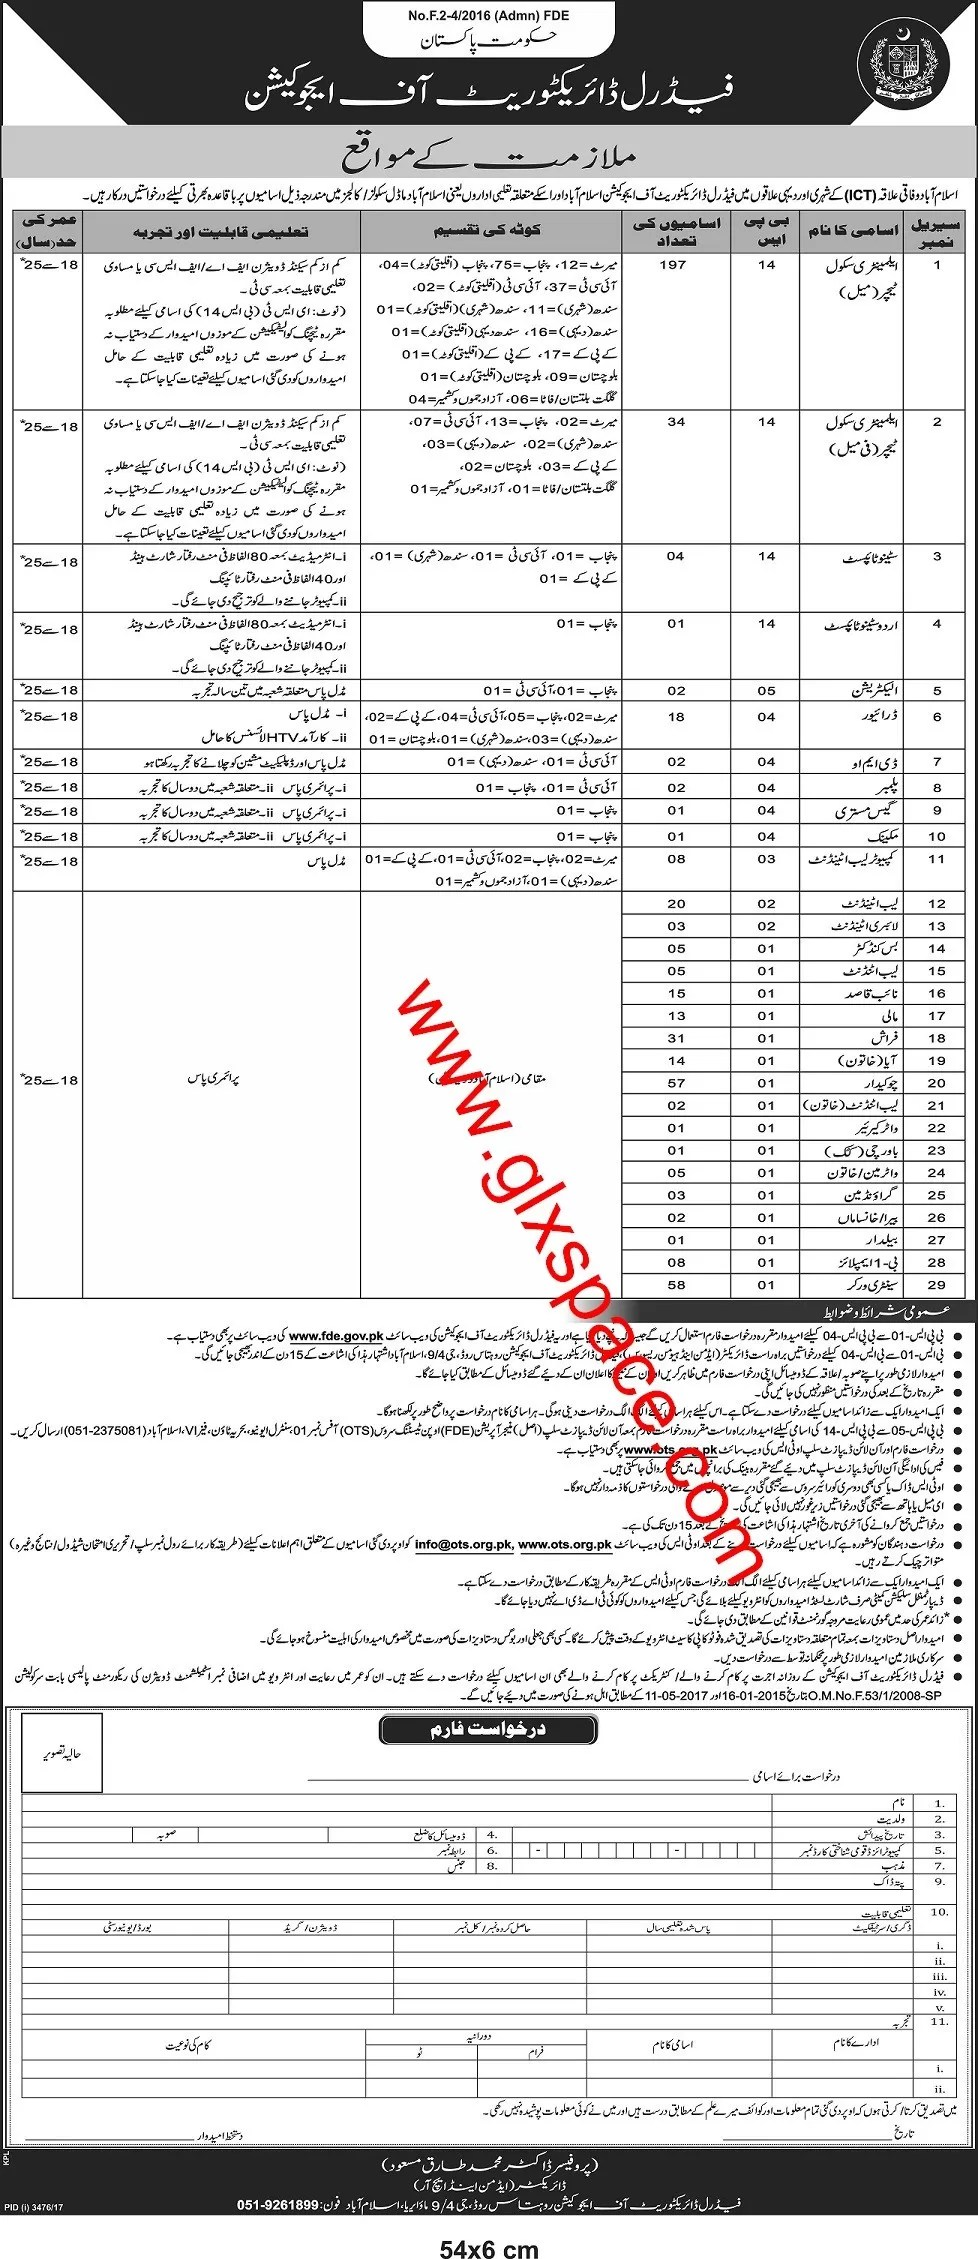 Federal Directorate of Education Vacancies 2018 for